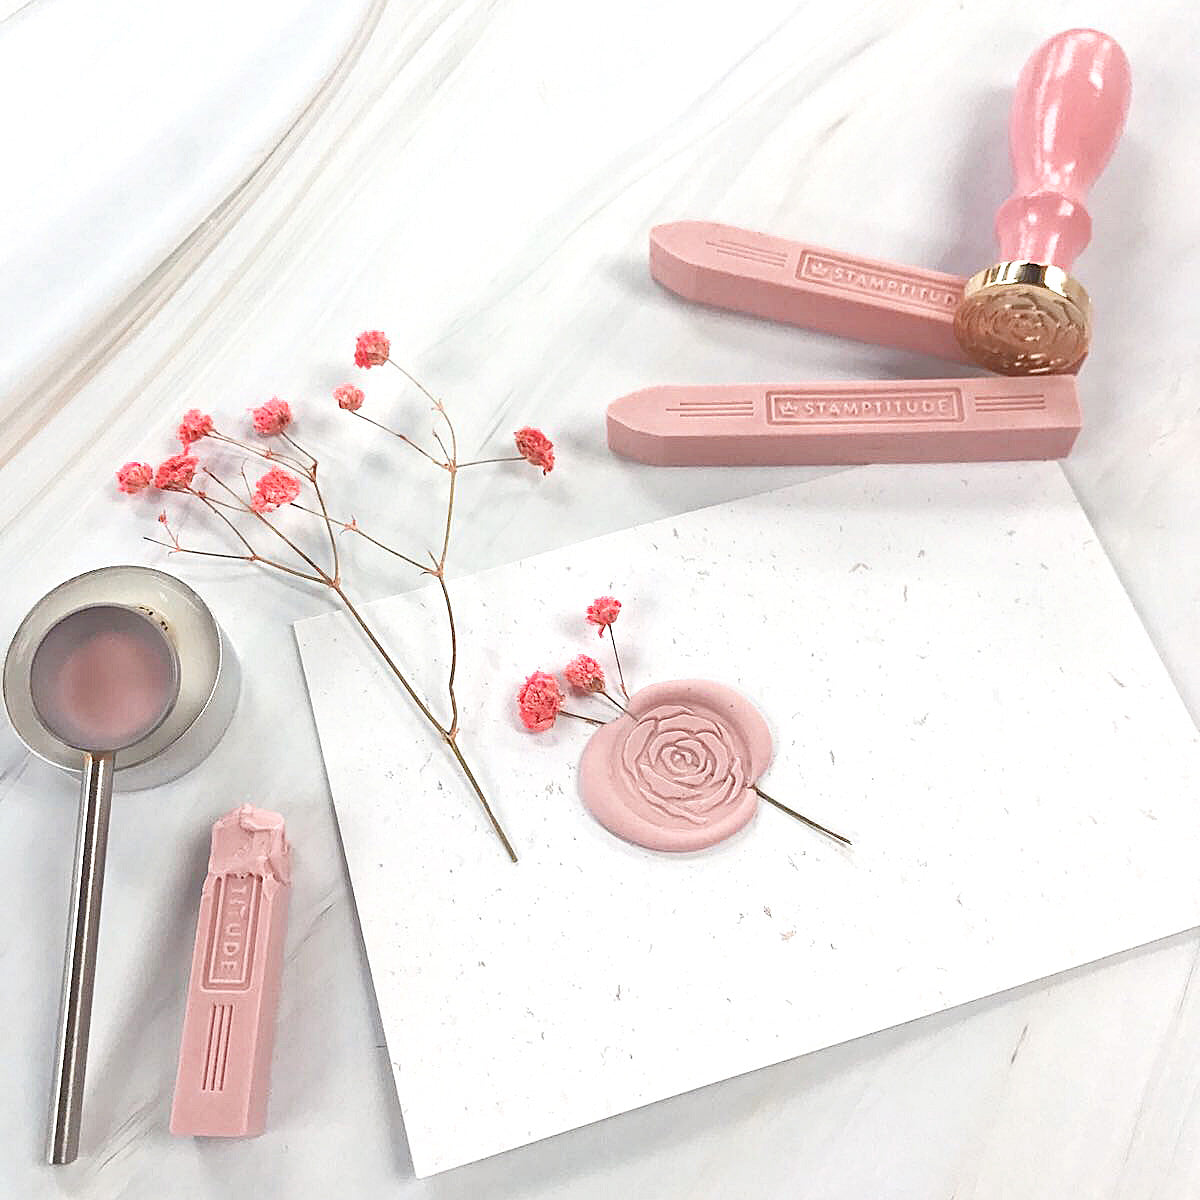 stamptitude blush wax seal